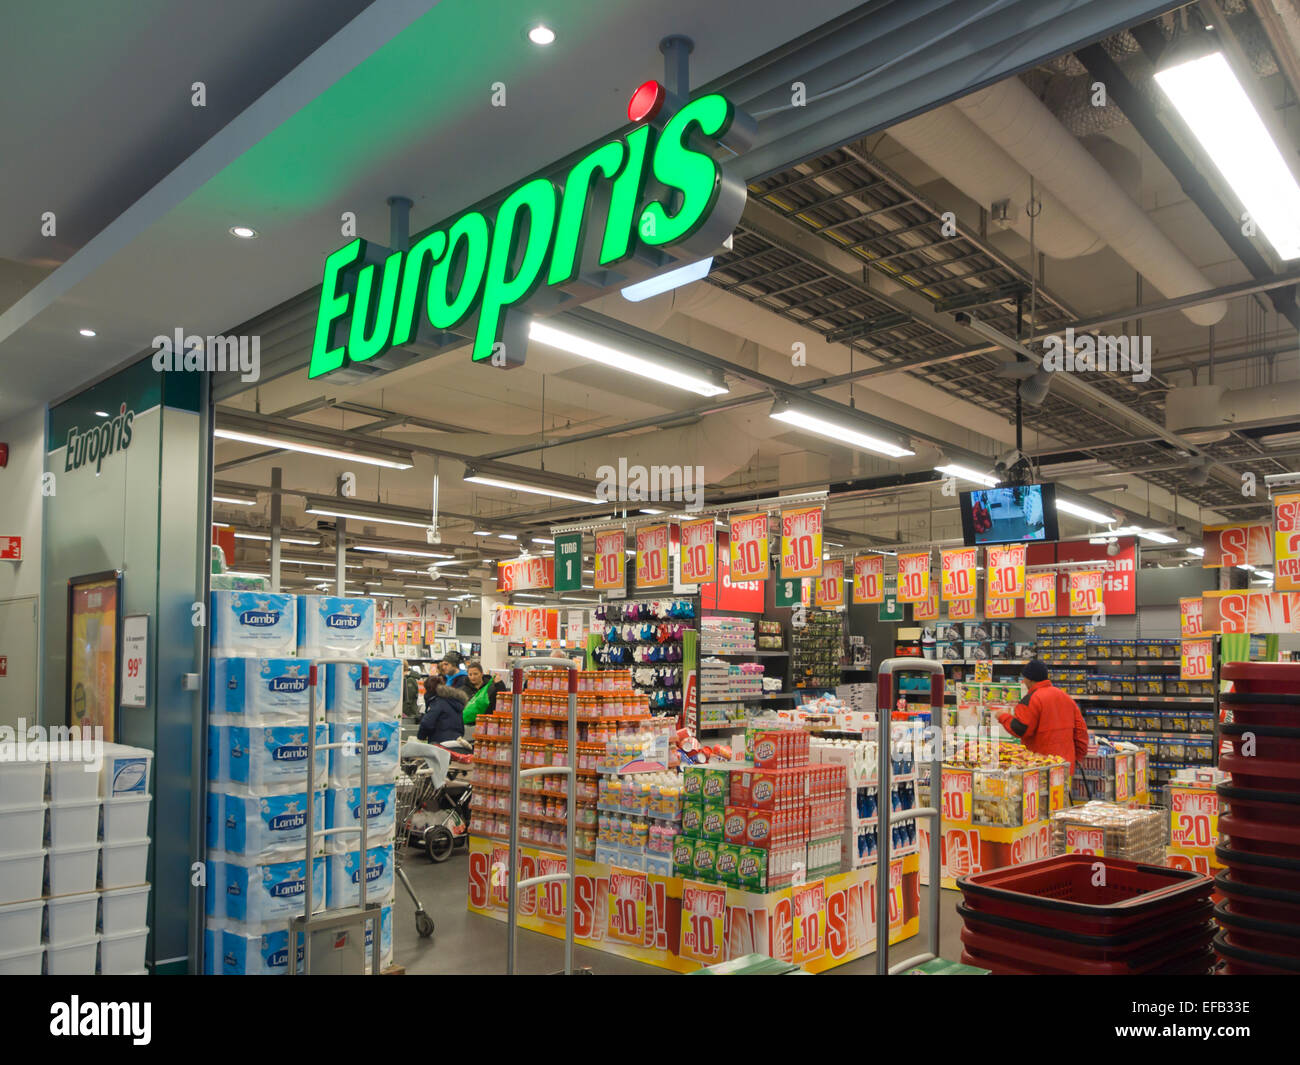 Europris Low Price Shopping Chain In Norway With